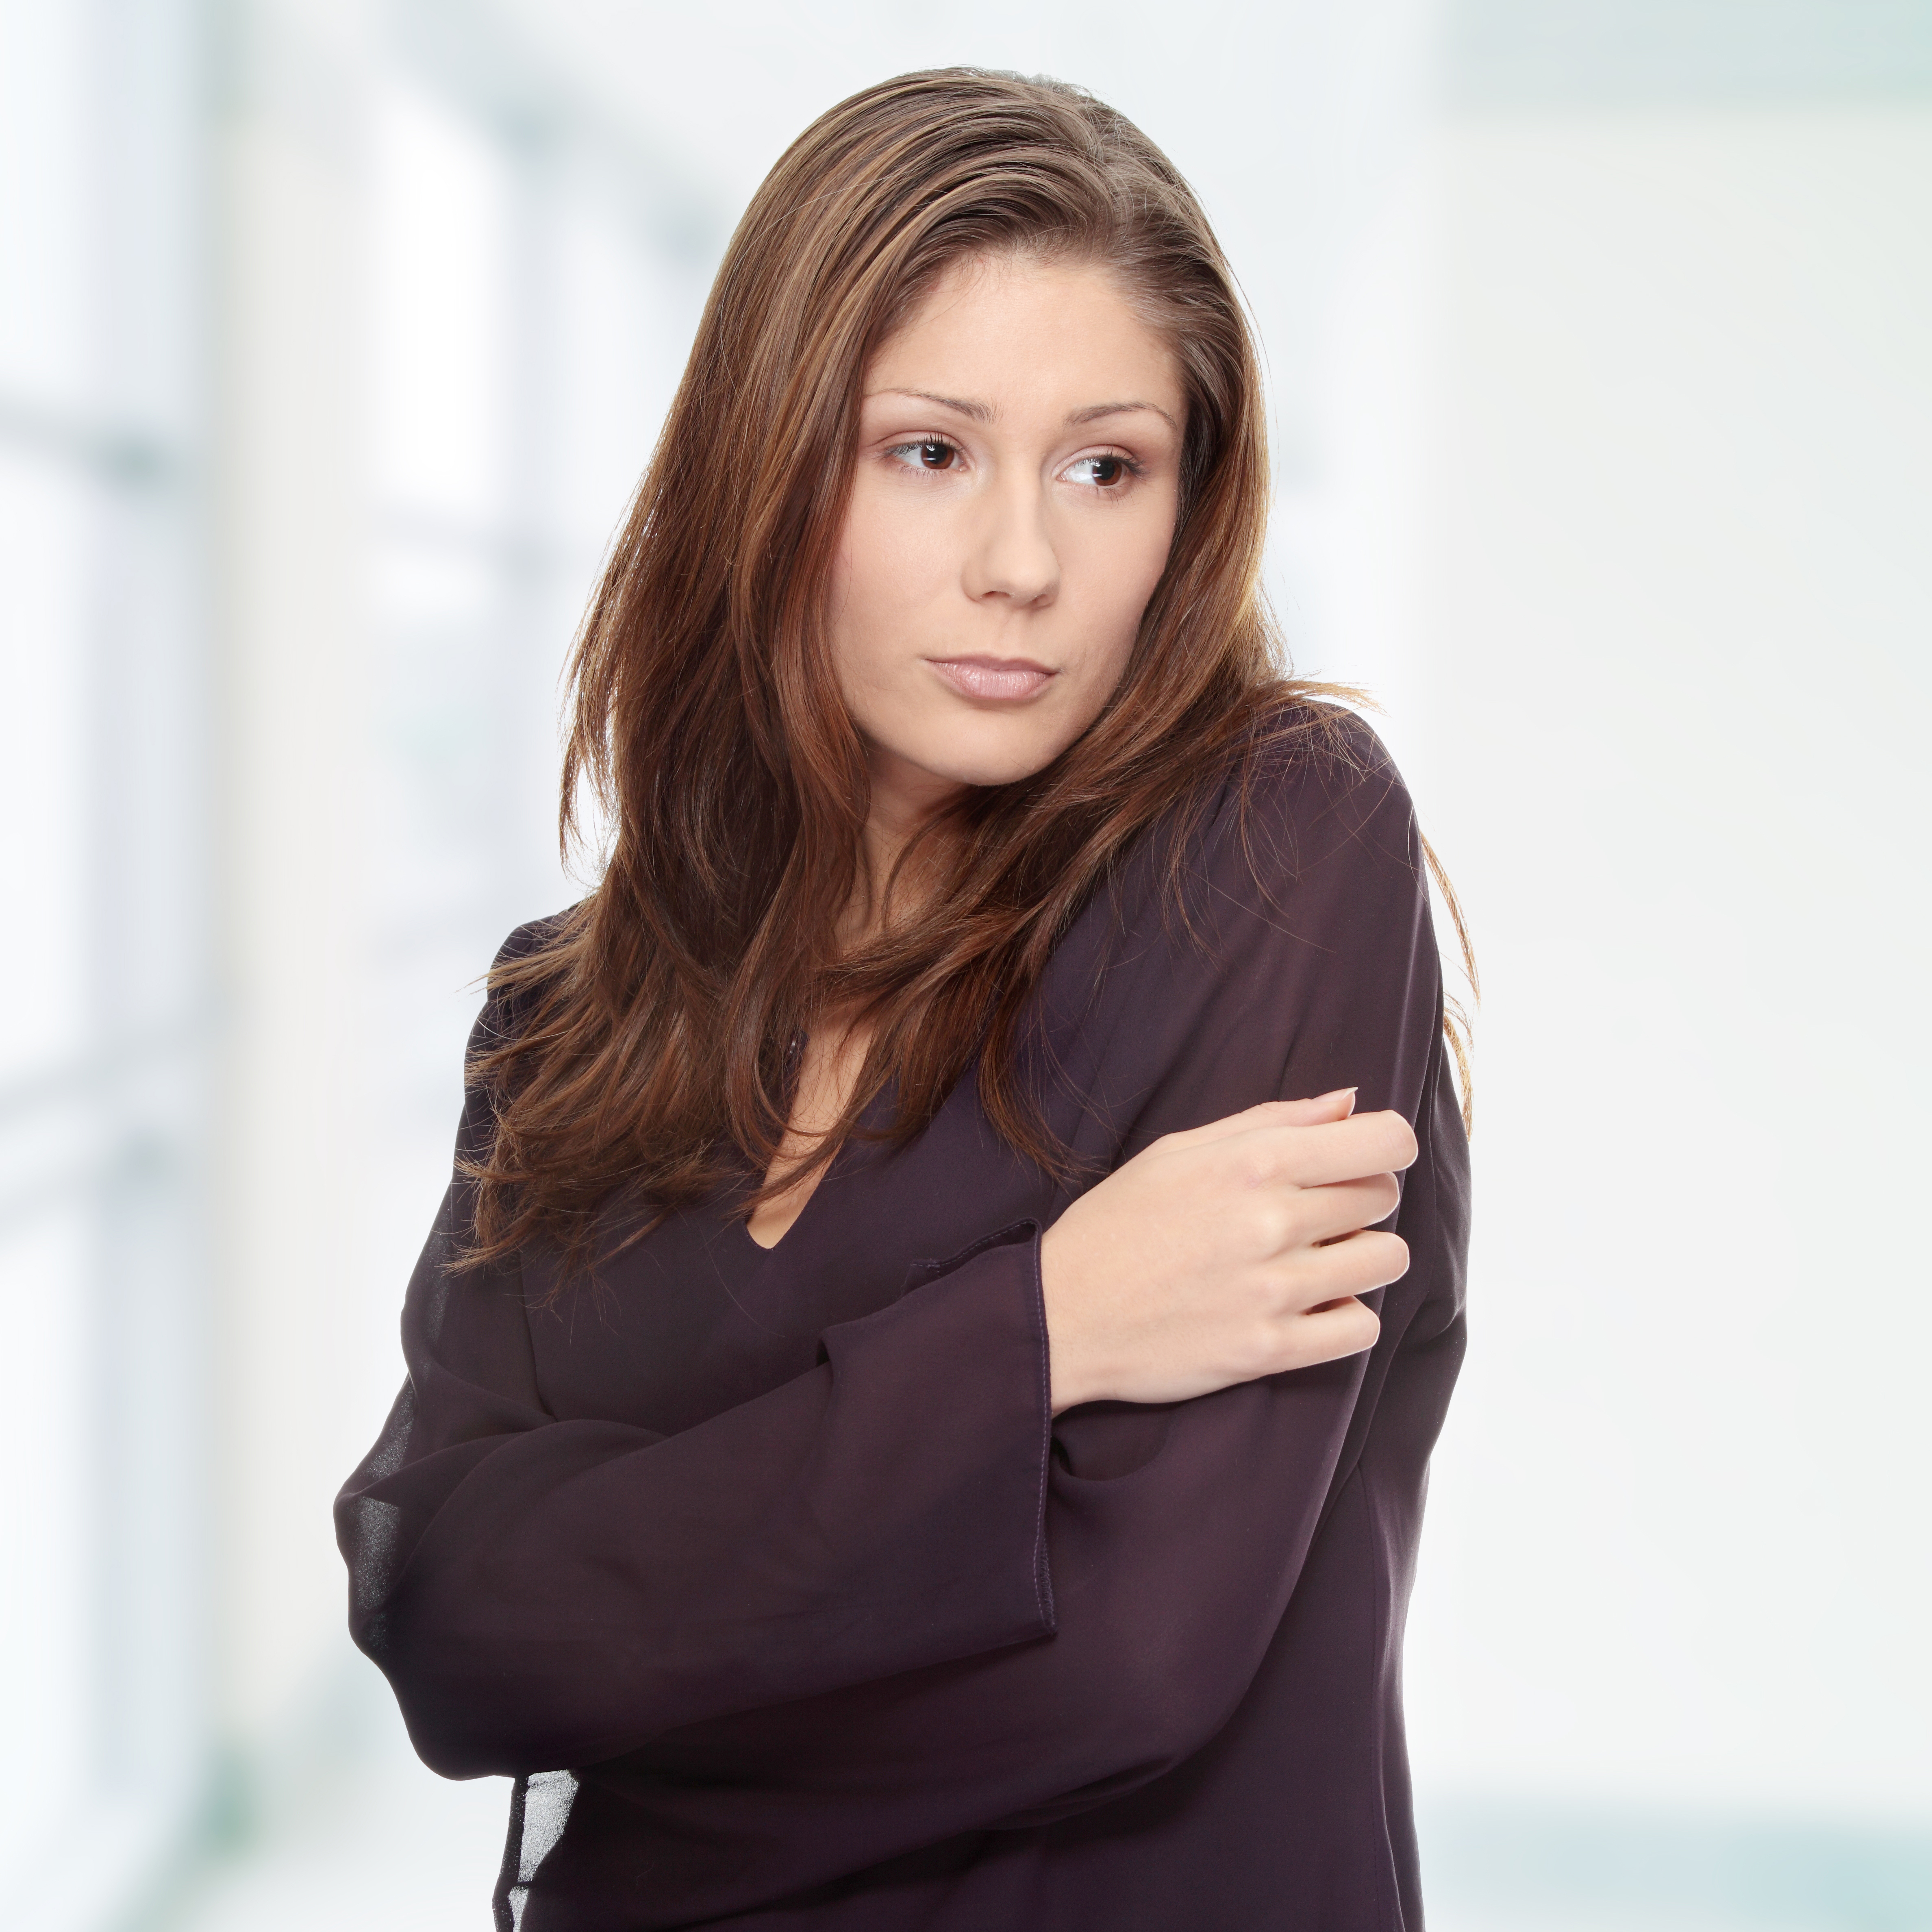 shutterstock_75450355 young woman looking depressed ...